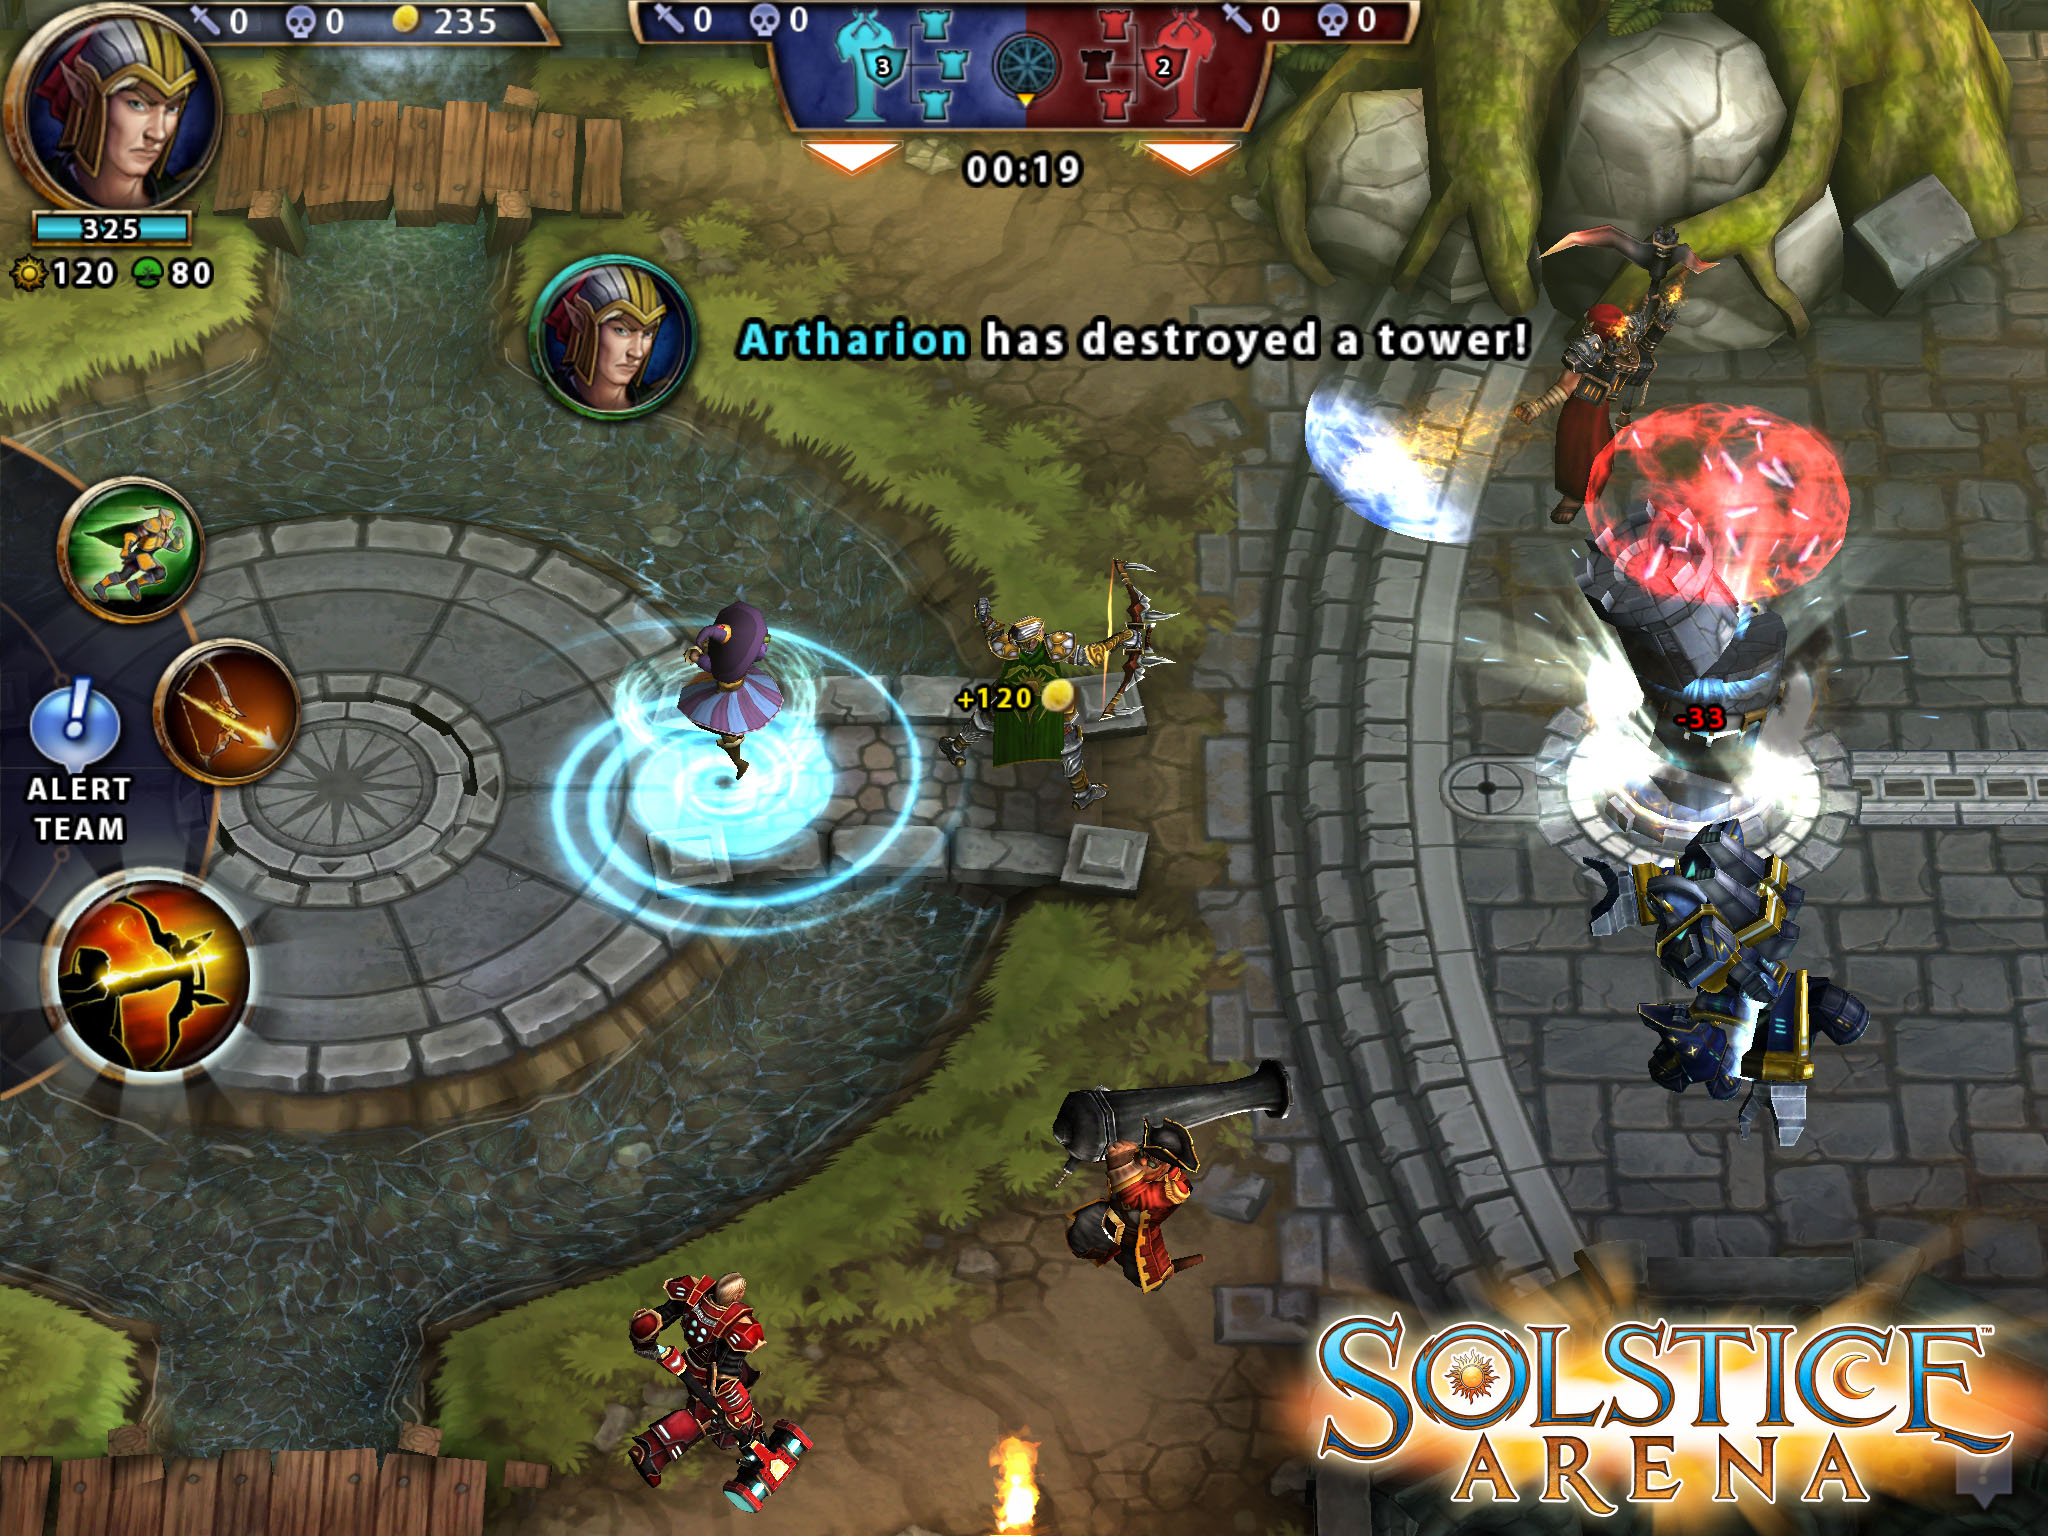 Zynga releases fast-paced MOBA Solstice Arena in New Zealand and Canada